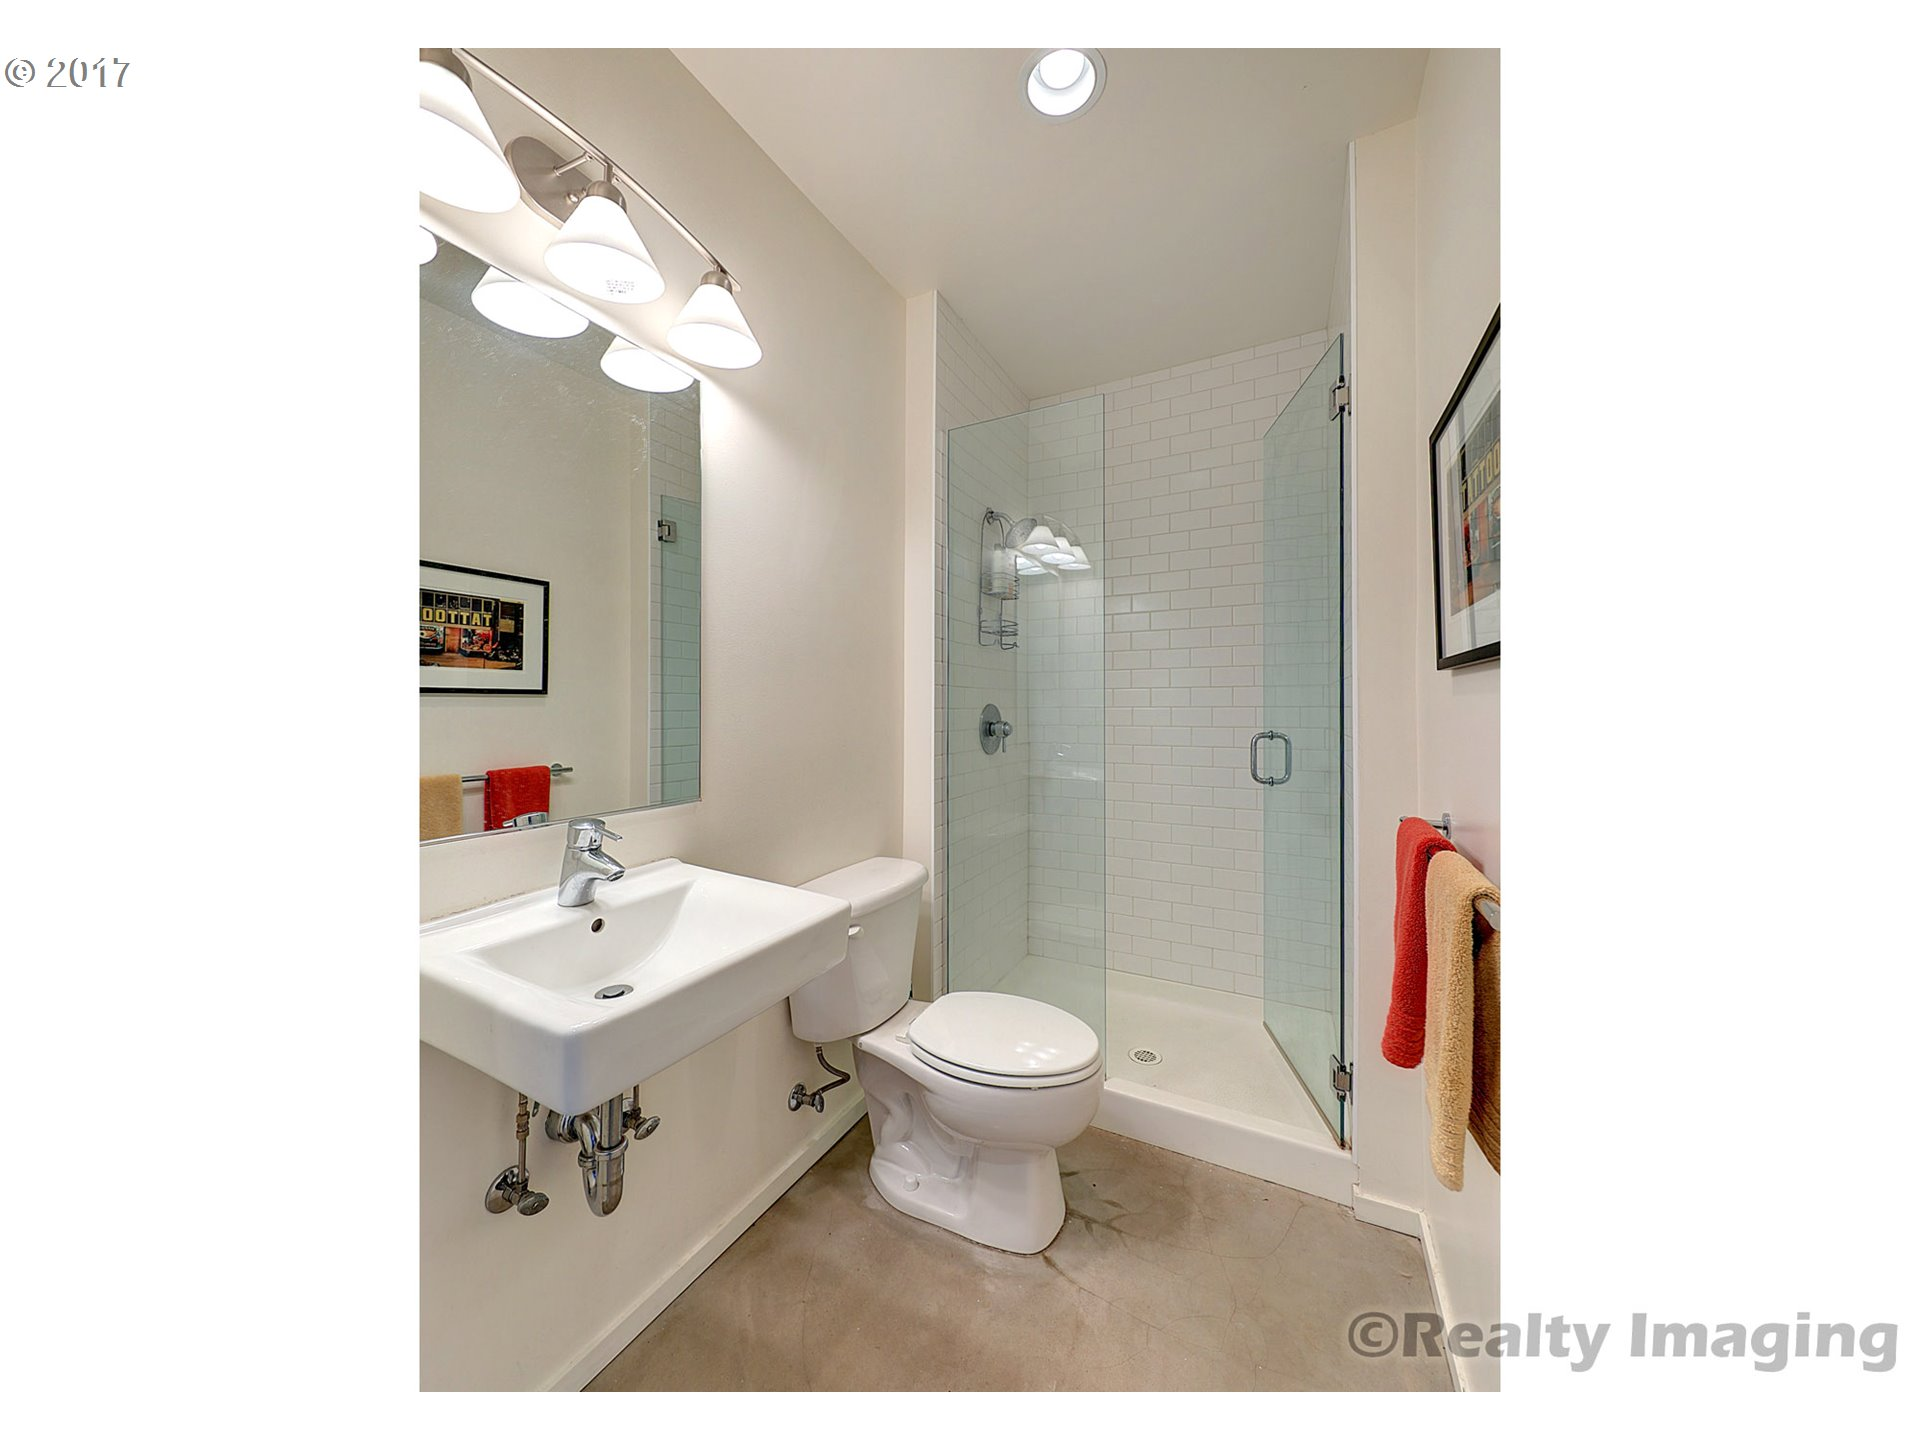 2373 SE 44TH AVE 301 Portland, OR 97215 - MLS #: 17569457